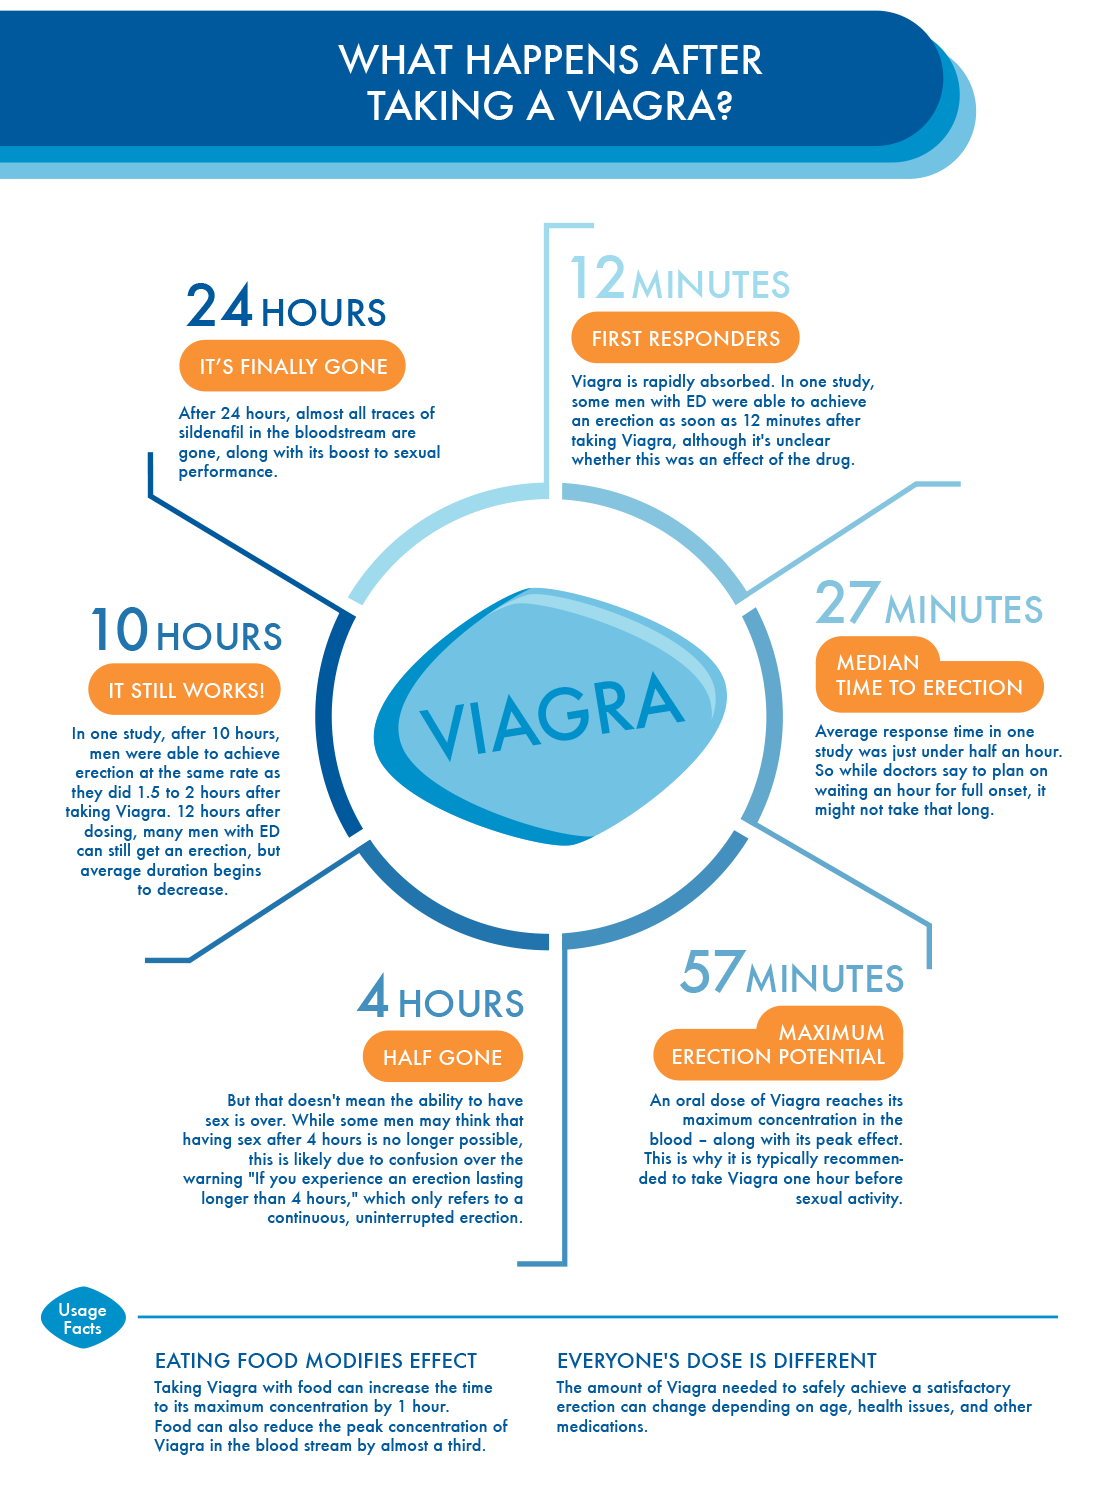 What are the side effects of taking viagra